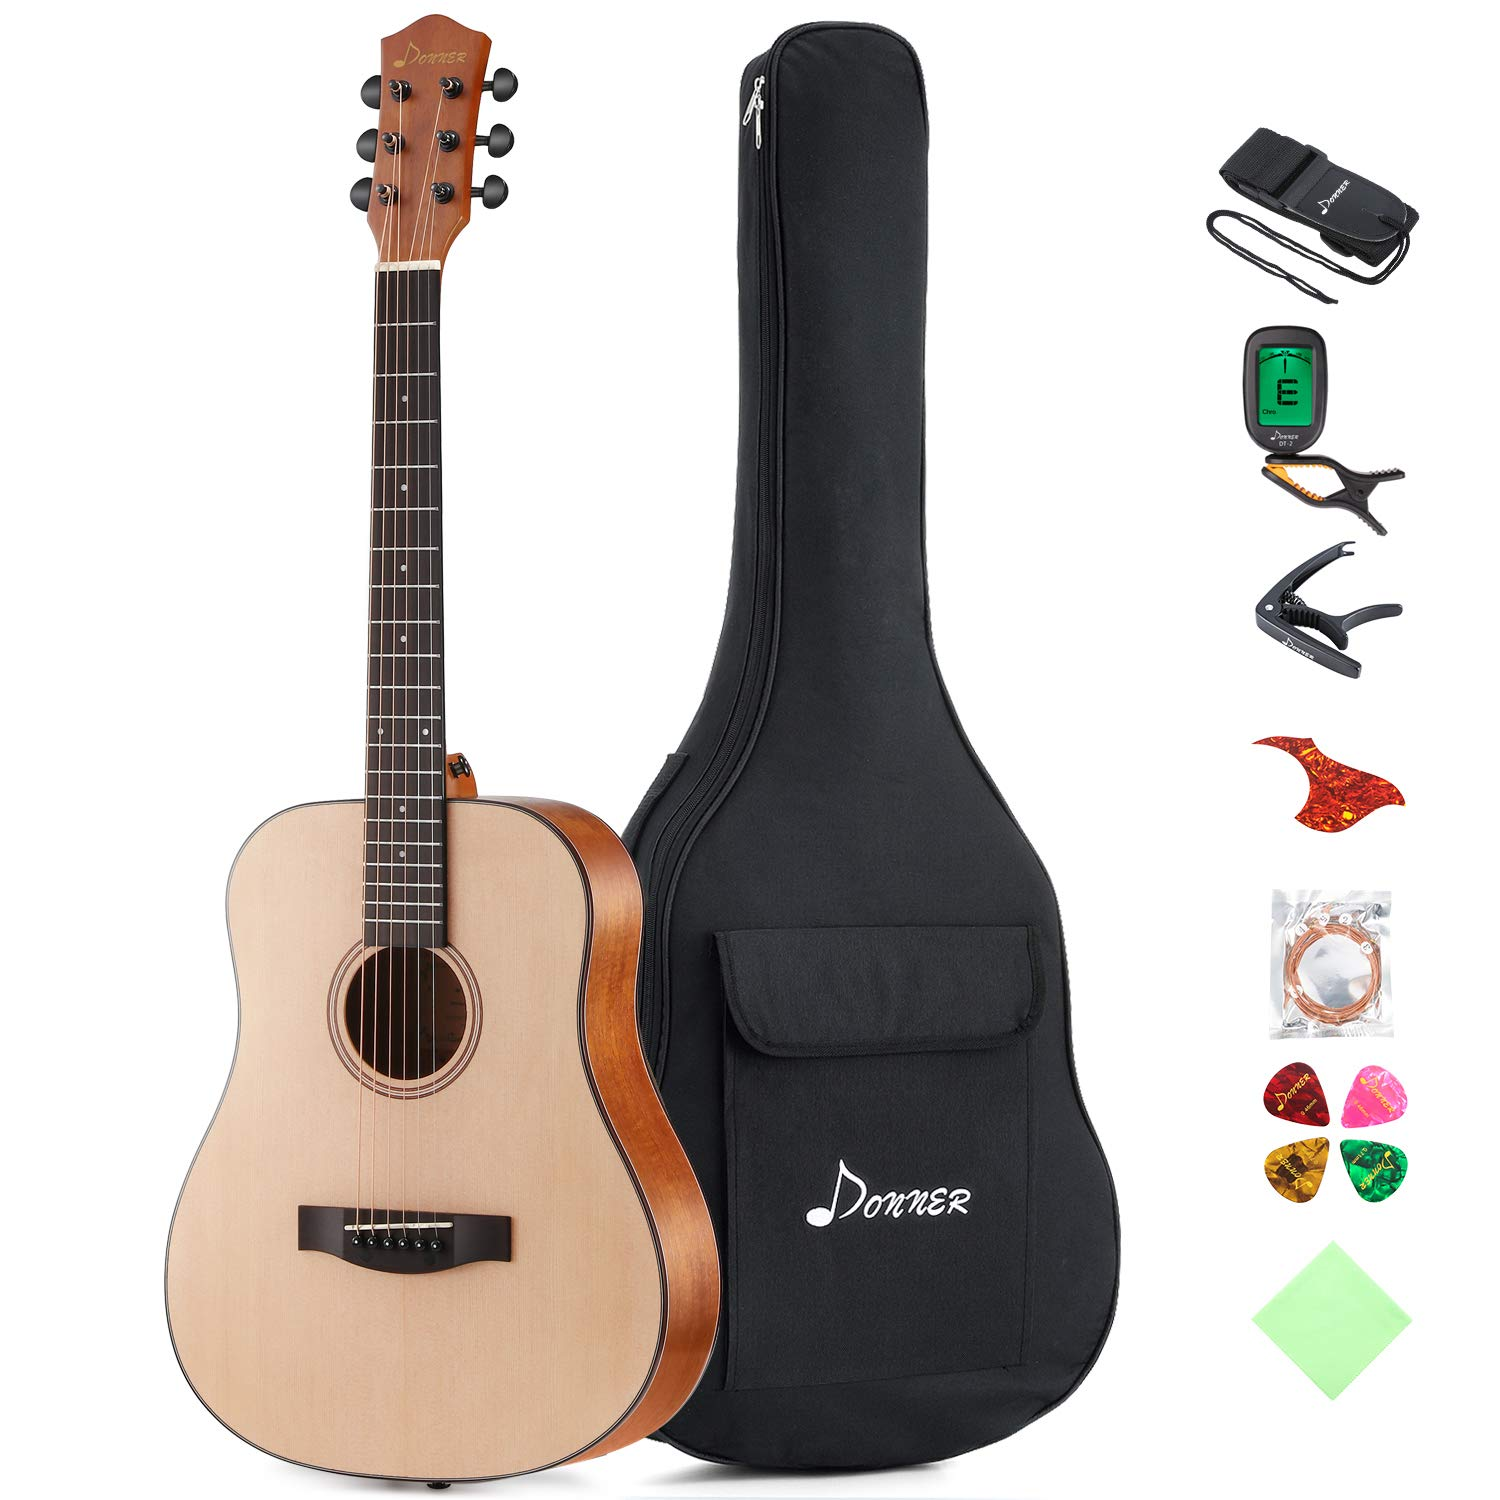 Amazon.com: Donner 36'' Dreadnought Acoustic Guitar Package 3/4 Size  Beginner Guitar Kit DAG-1M Spruce Body With Bag Capo Tuner Strap String  Guitar Picks: ...